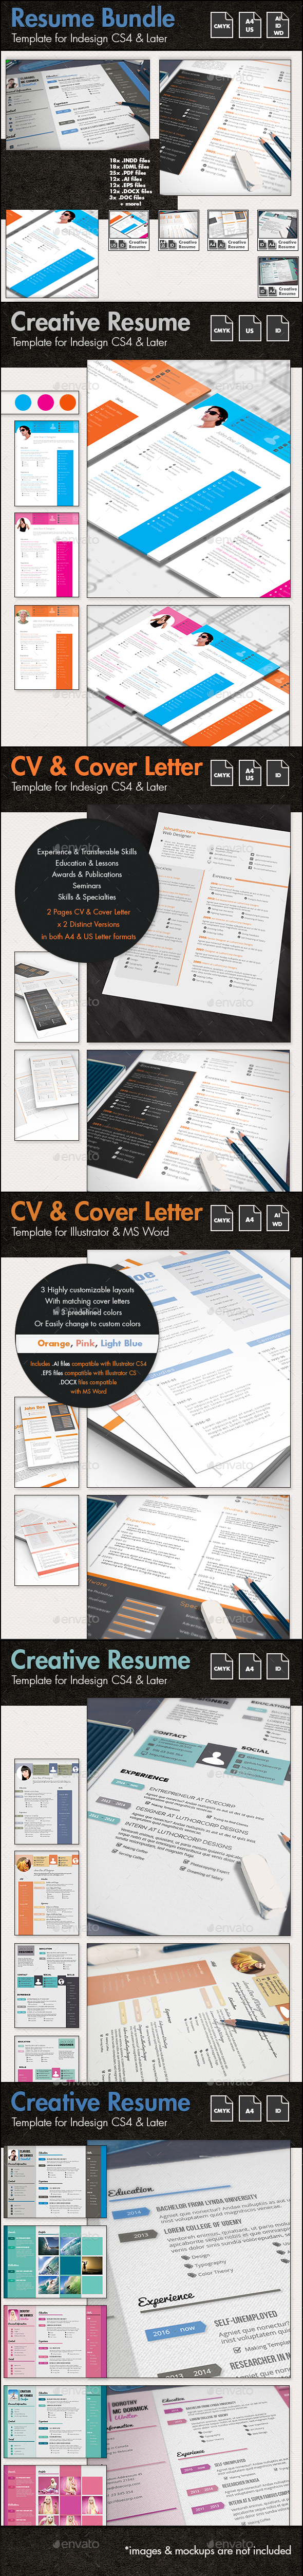 The Ultimate CV and Resume Template Bundle